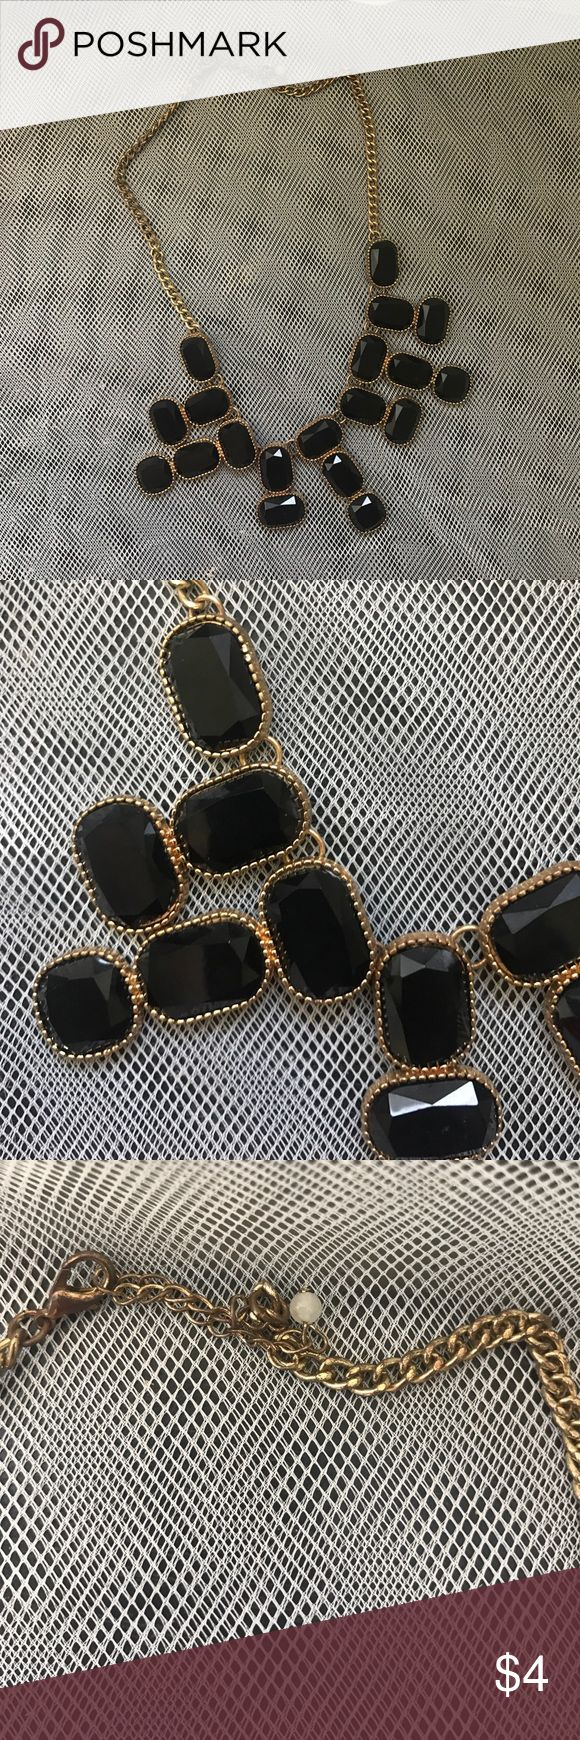 Statement necklace Black statement necklace with gold chain Jewelry Necklaces